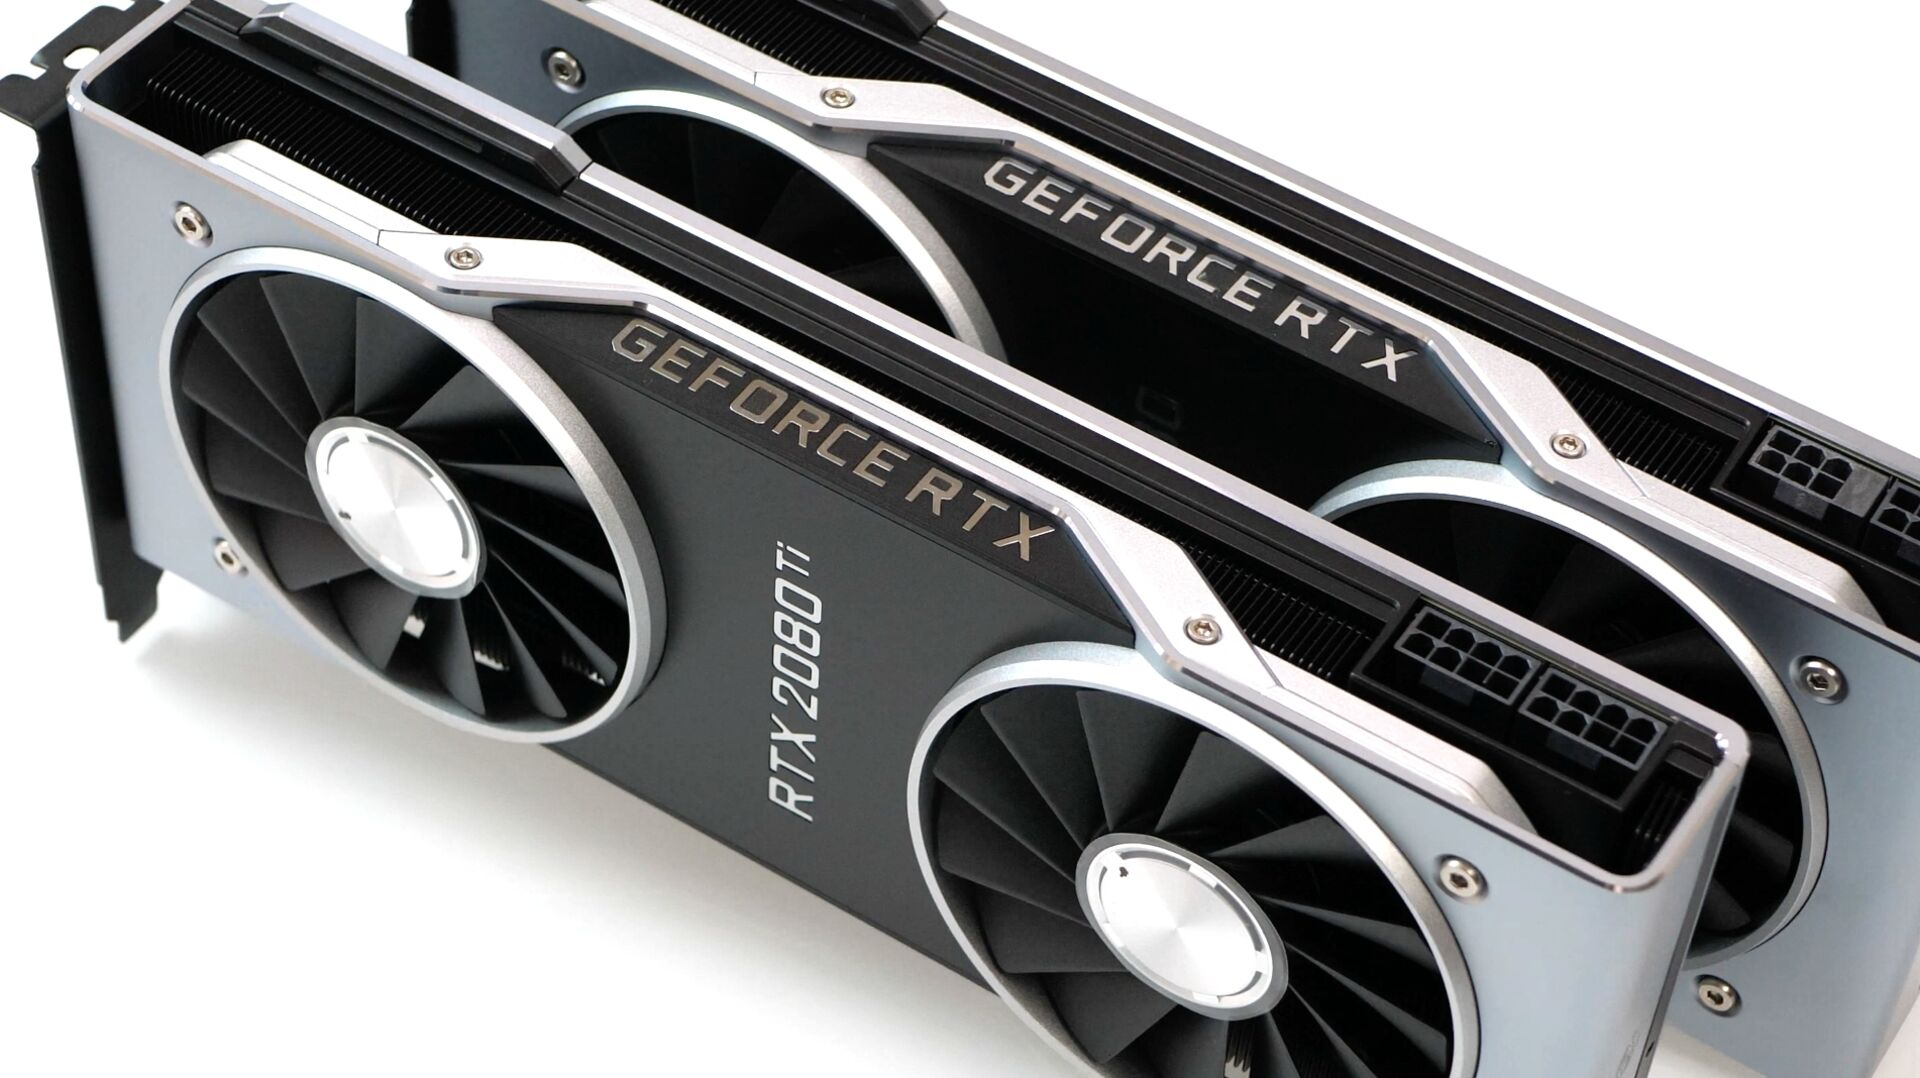 GeForce RTX 2080/ RTX 2080 Ti: the Digital Foundry verdict